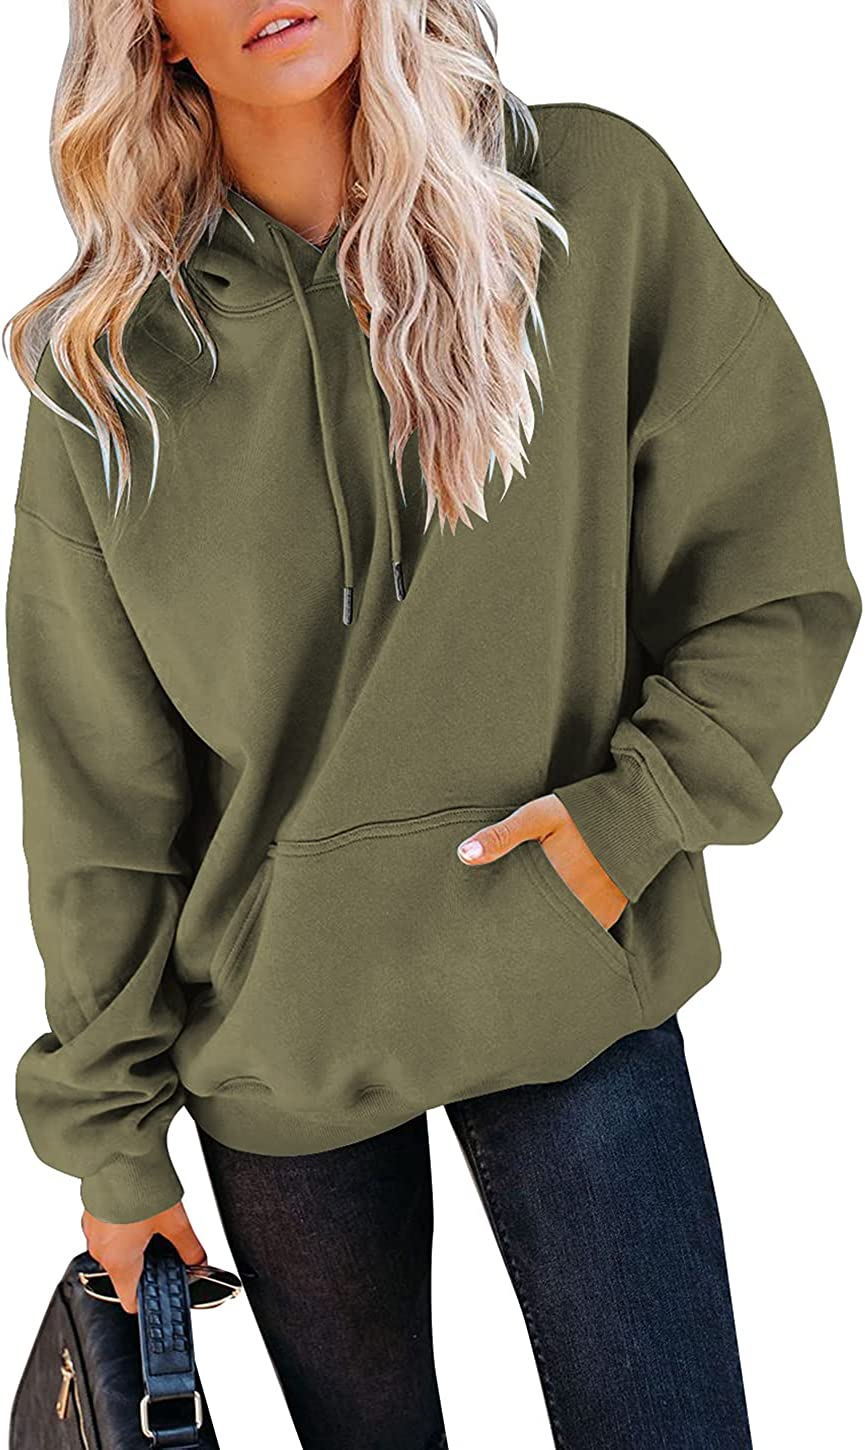 Yuccalley Women's Casual Hoodies Loose Long Sleeve Pullover Tops Hooded Sweatshirt with Pocket